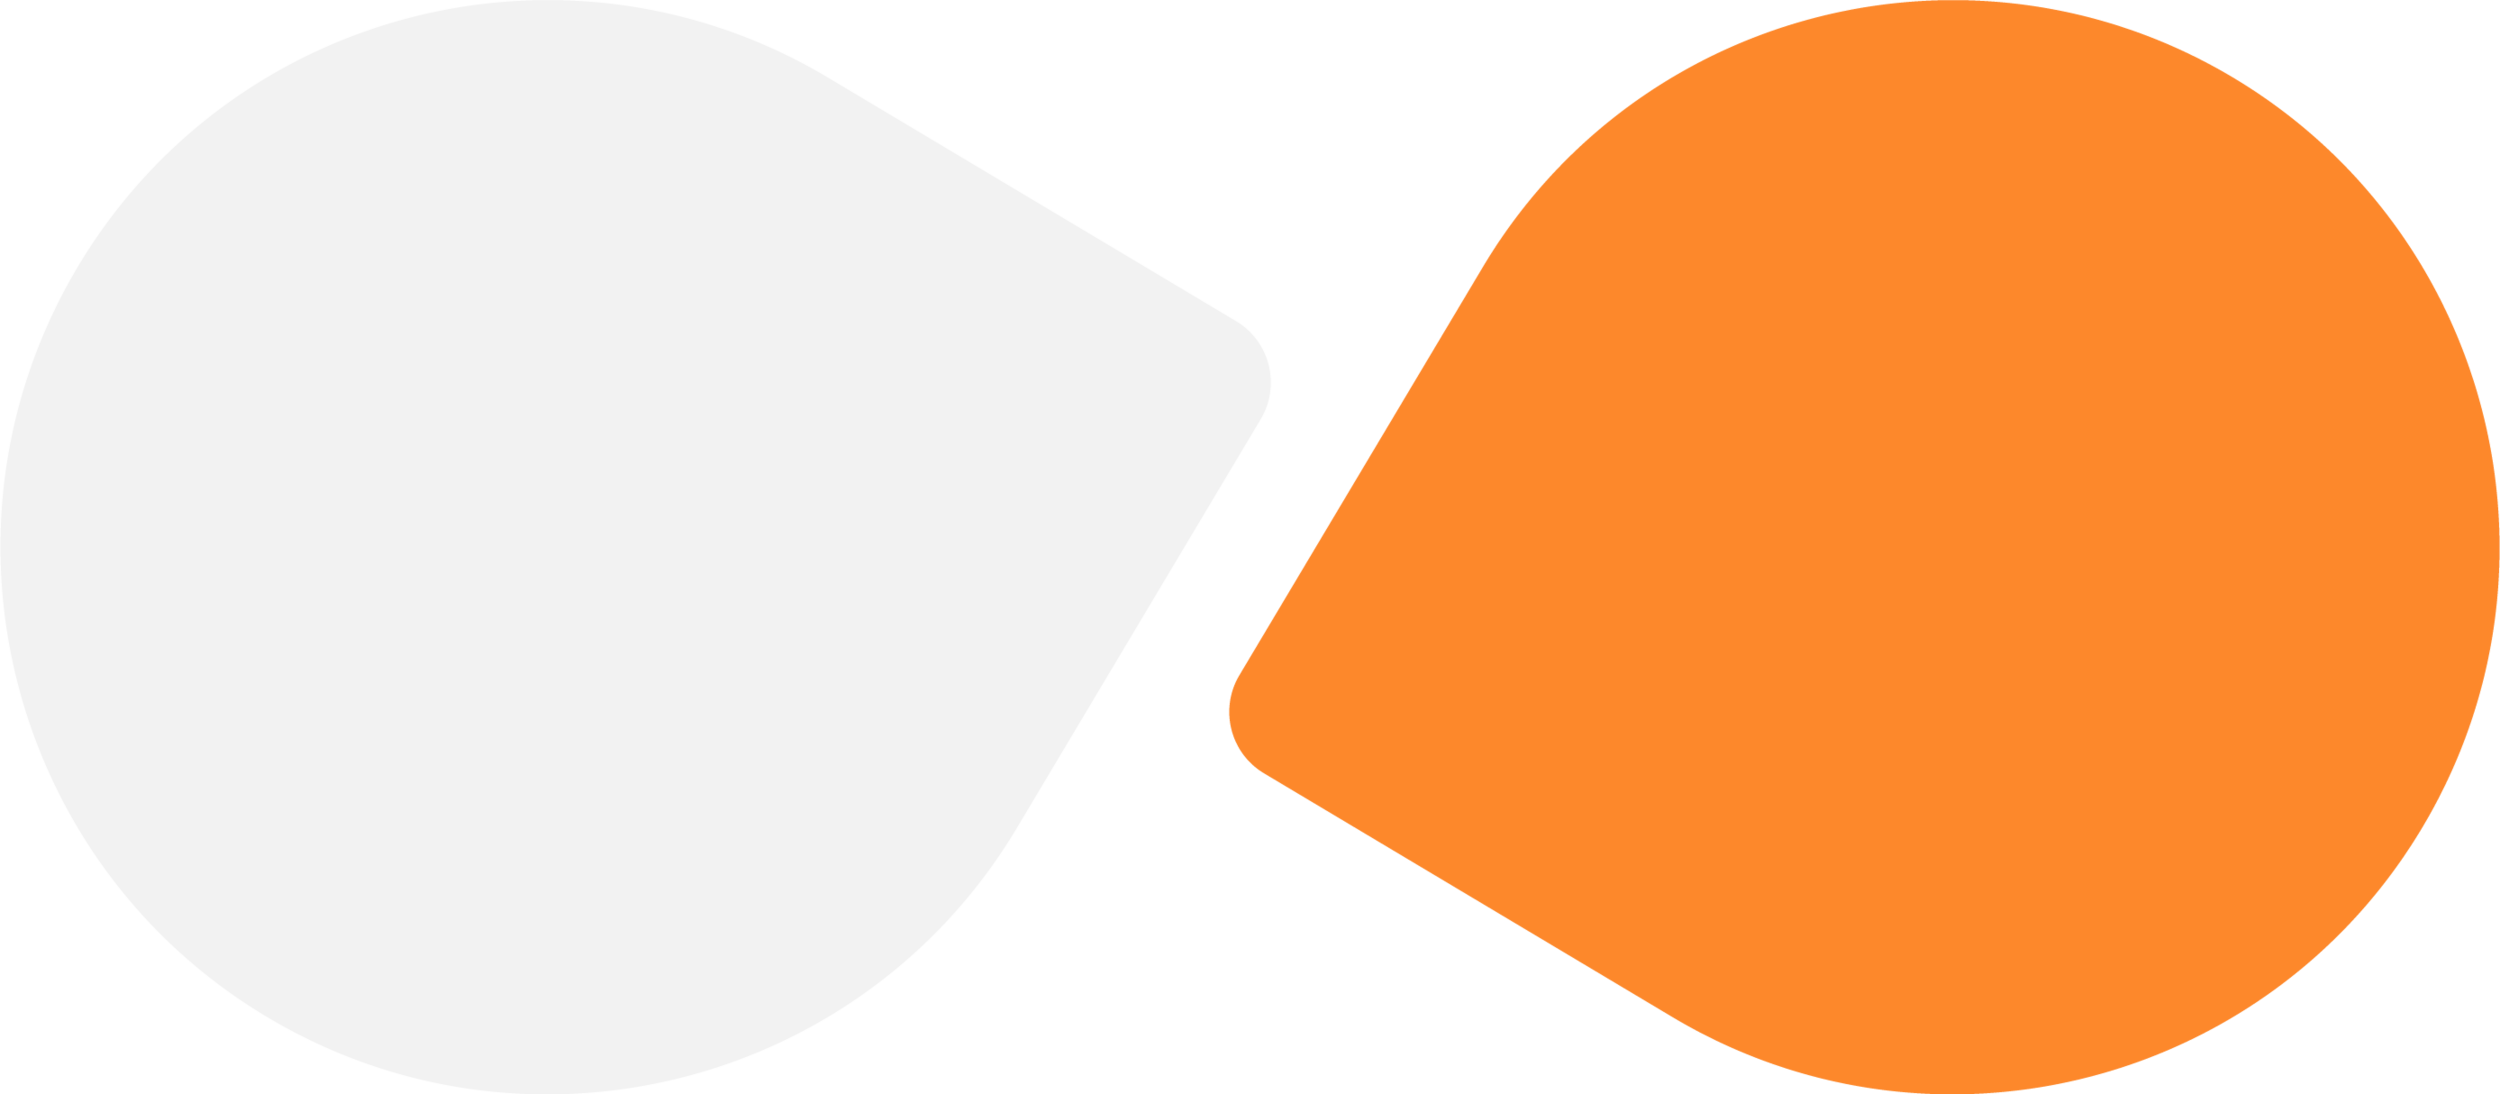 Overloop brandmark_Orange:Off white.png